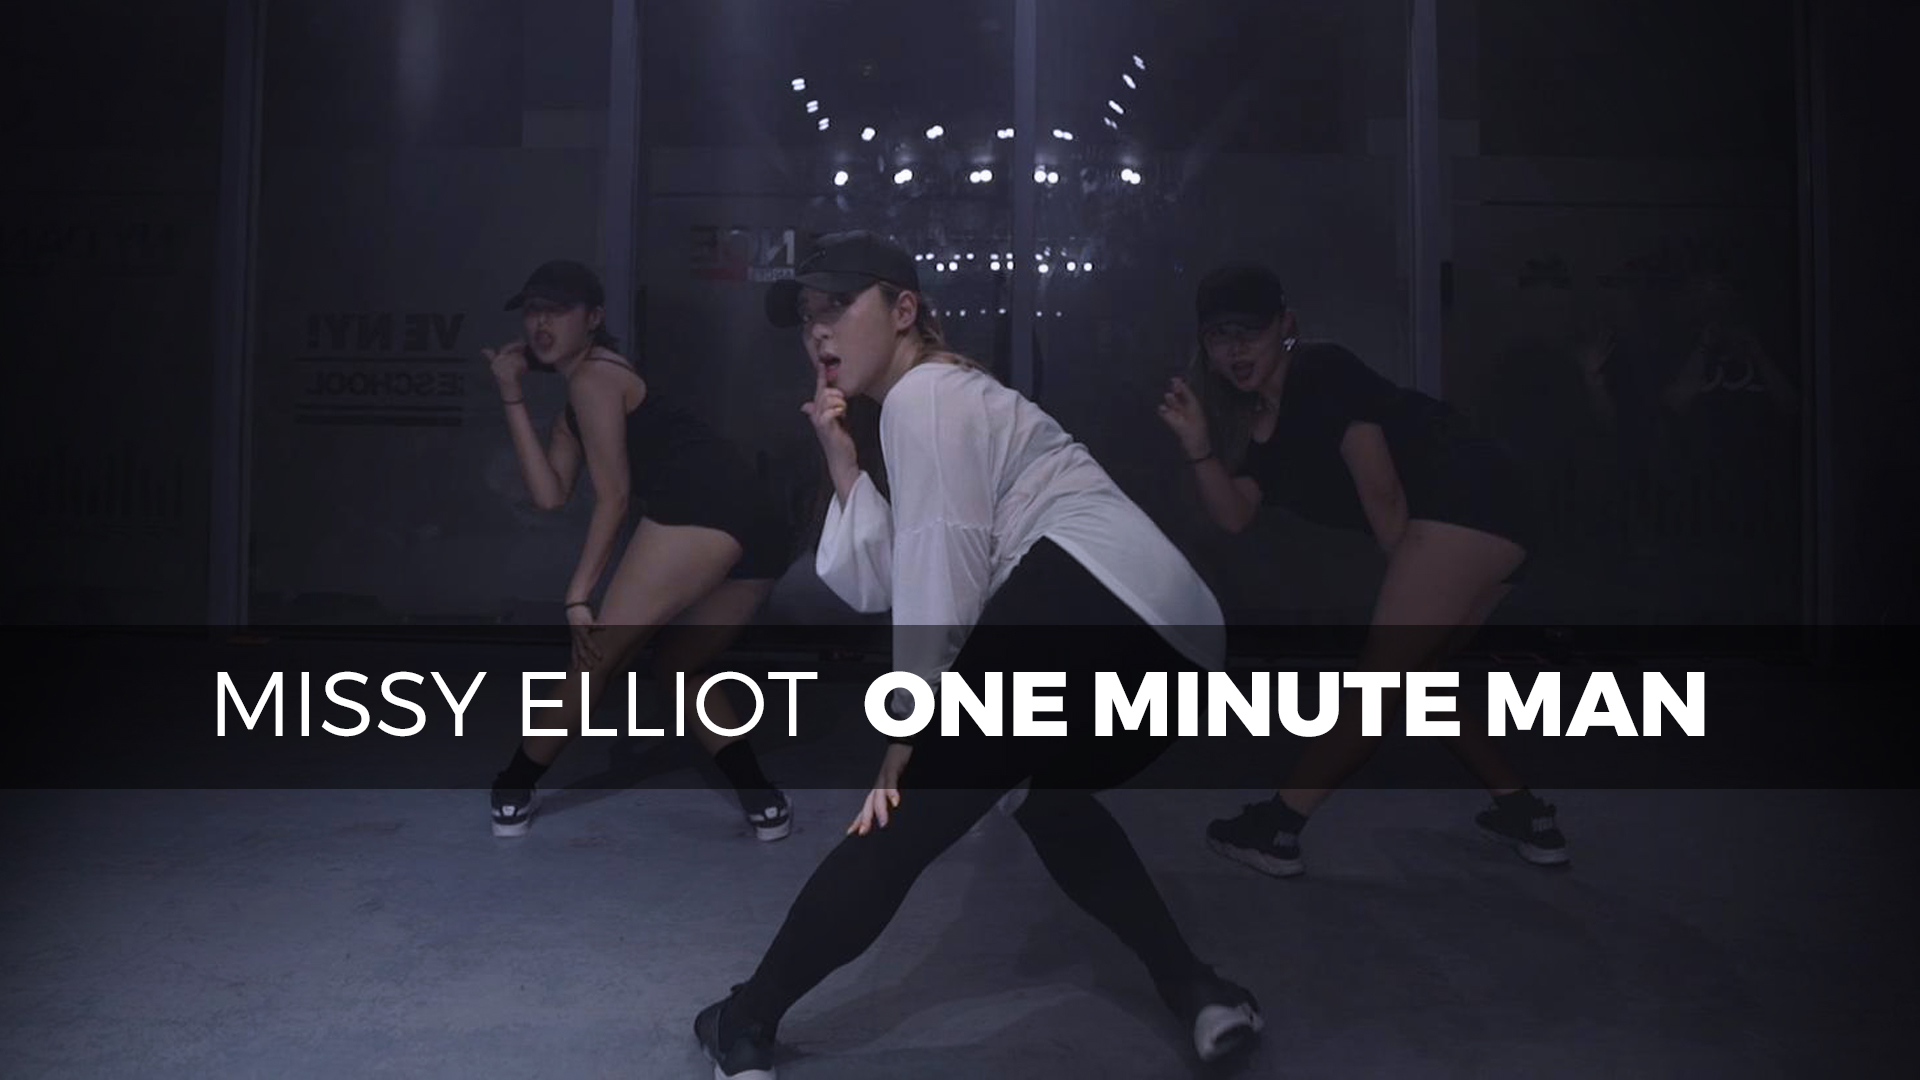 Missy Elliot (ft. Ludacris & Trina) – One Minute Man (choreography_Amy)